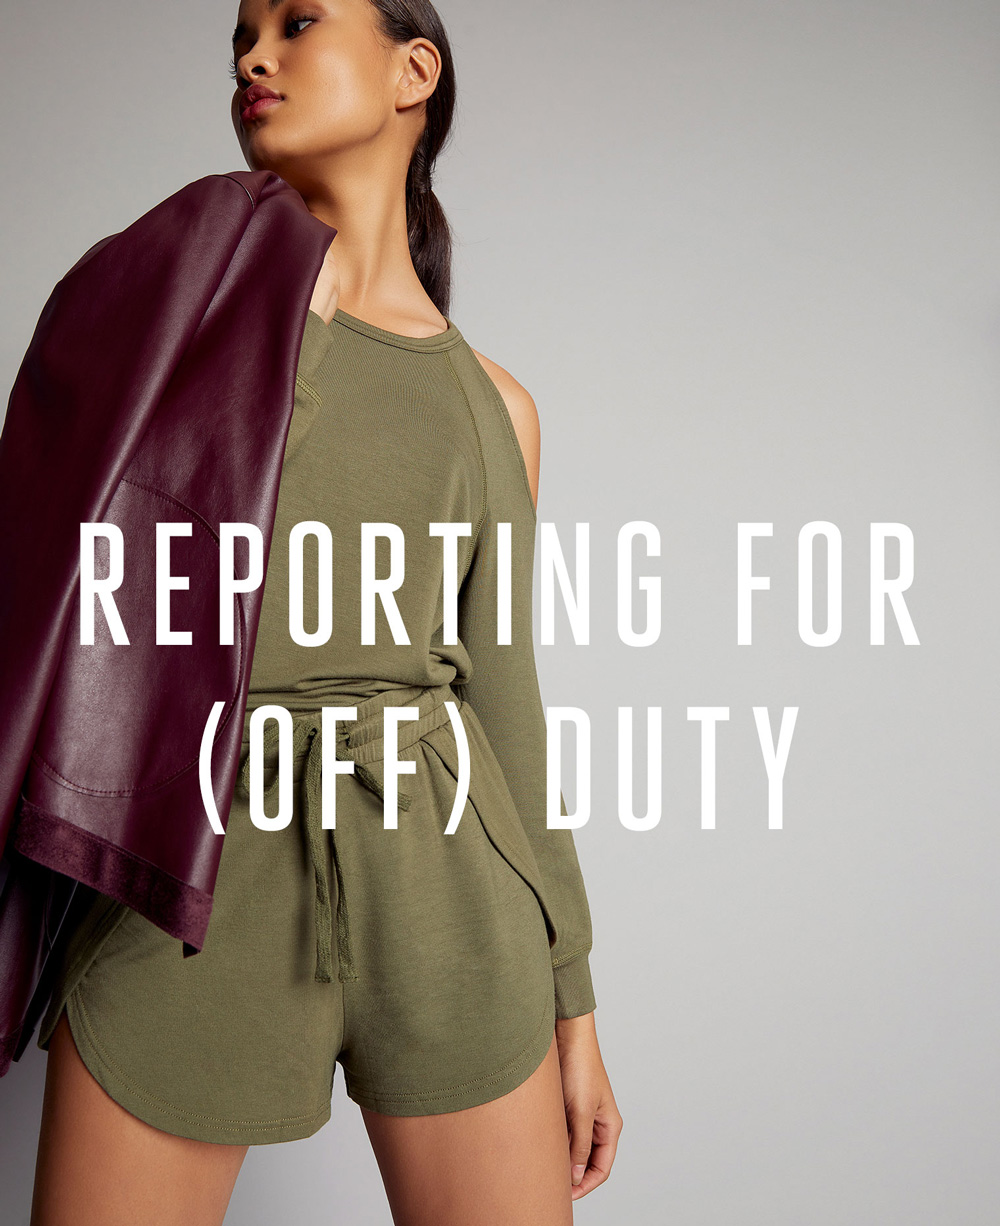 Reporting for (off) duty